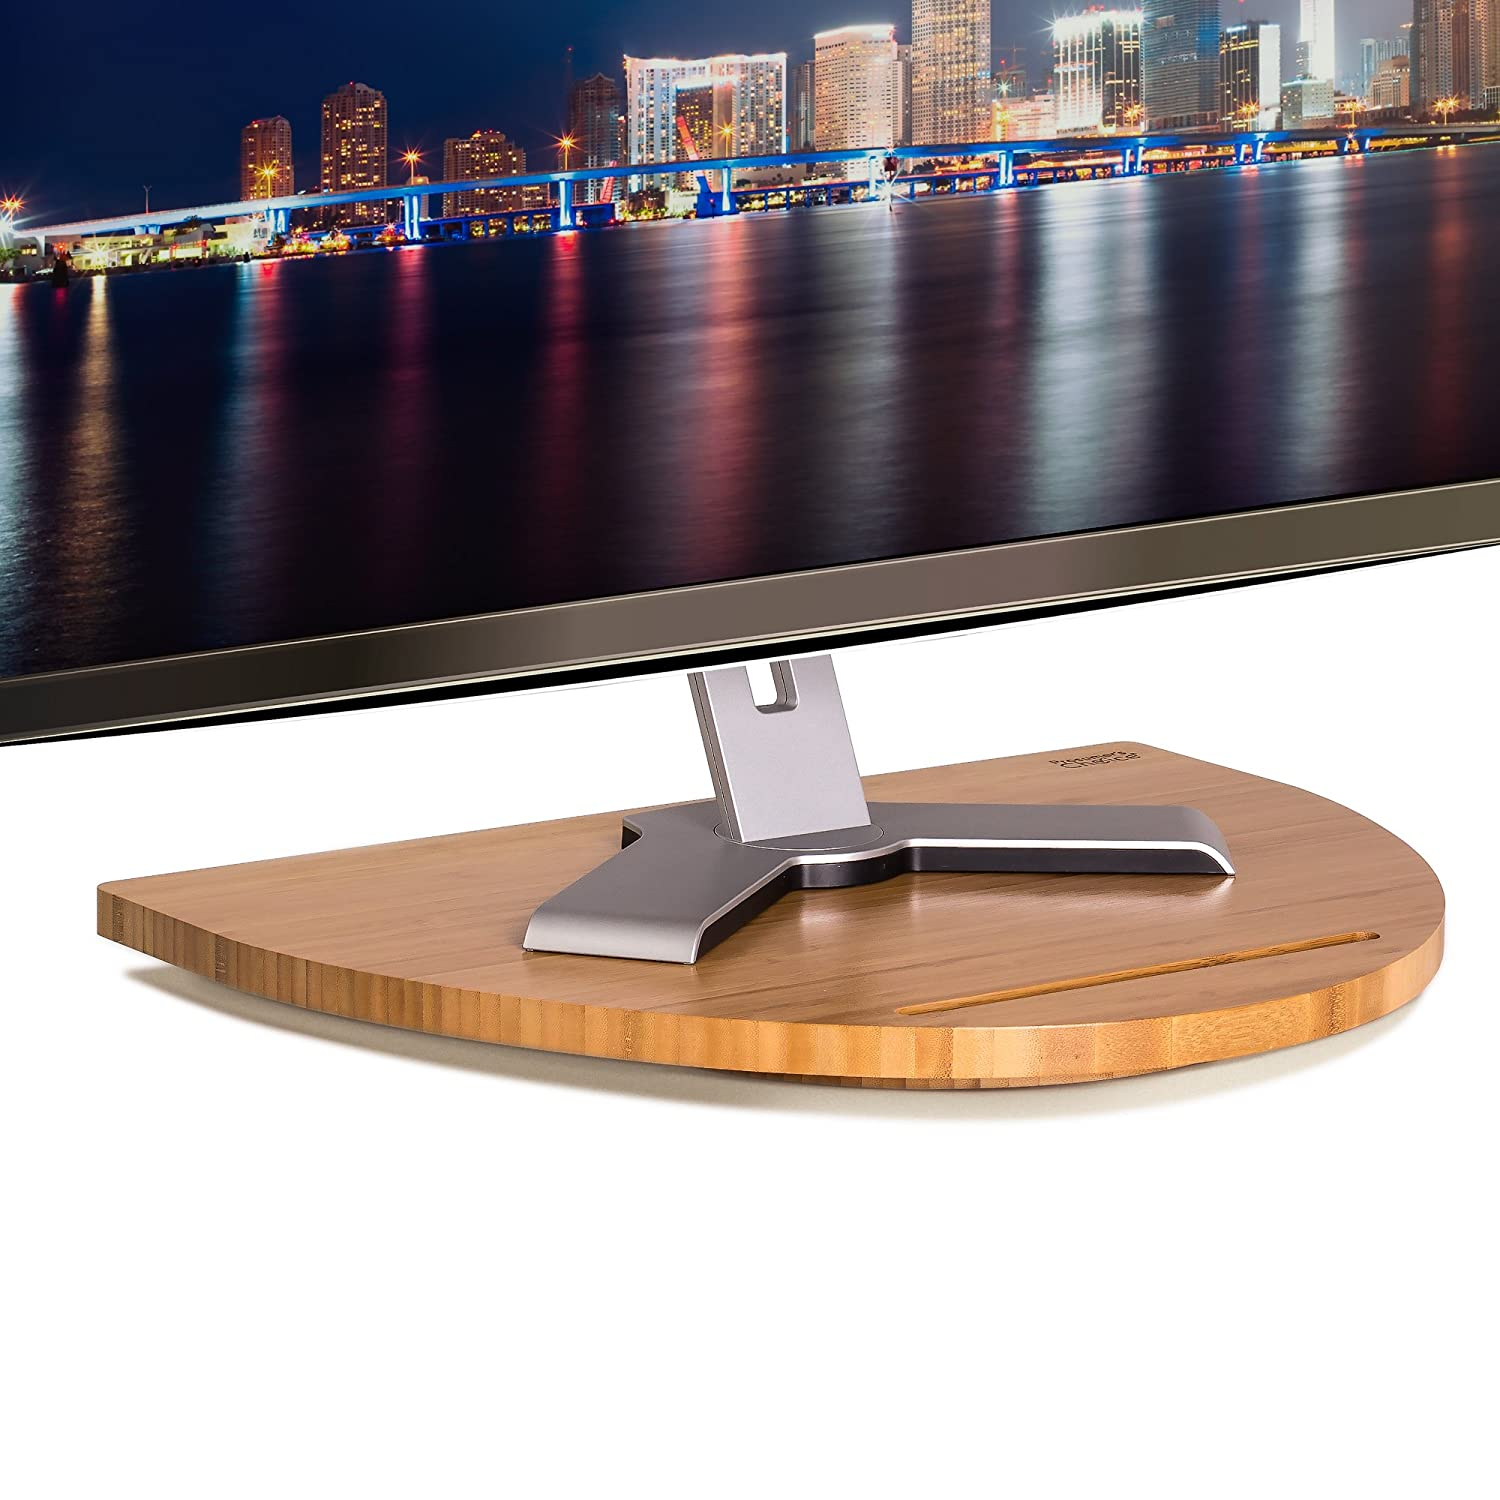 Prosumer' s Choice Natural Bamboo TV Swivel Stand for TV, 21 inch Base Black Aleratec